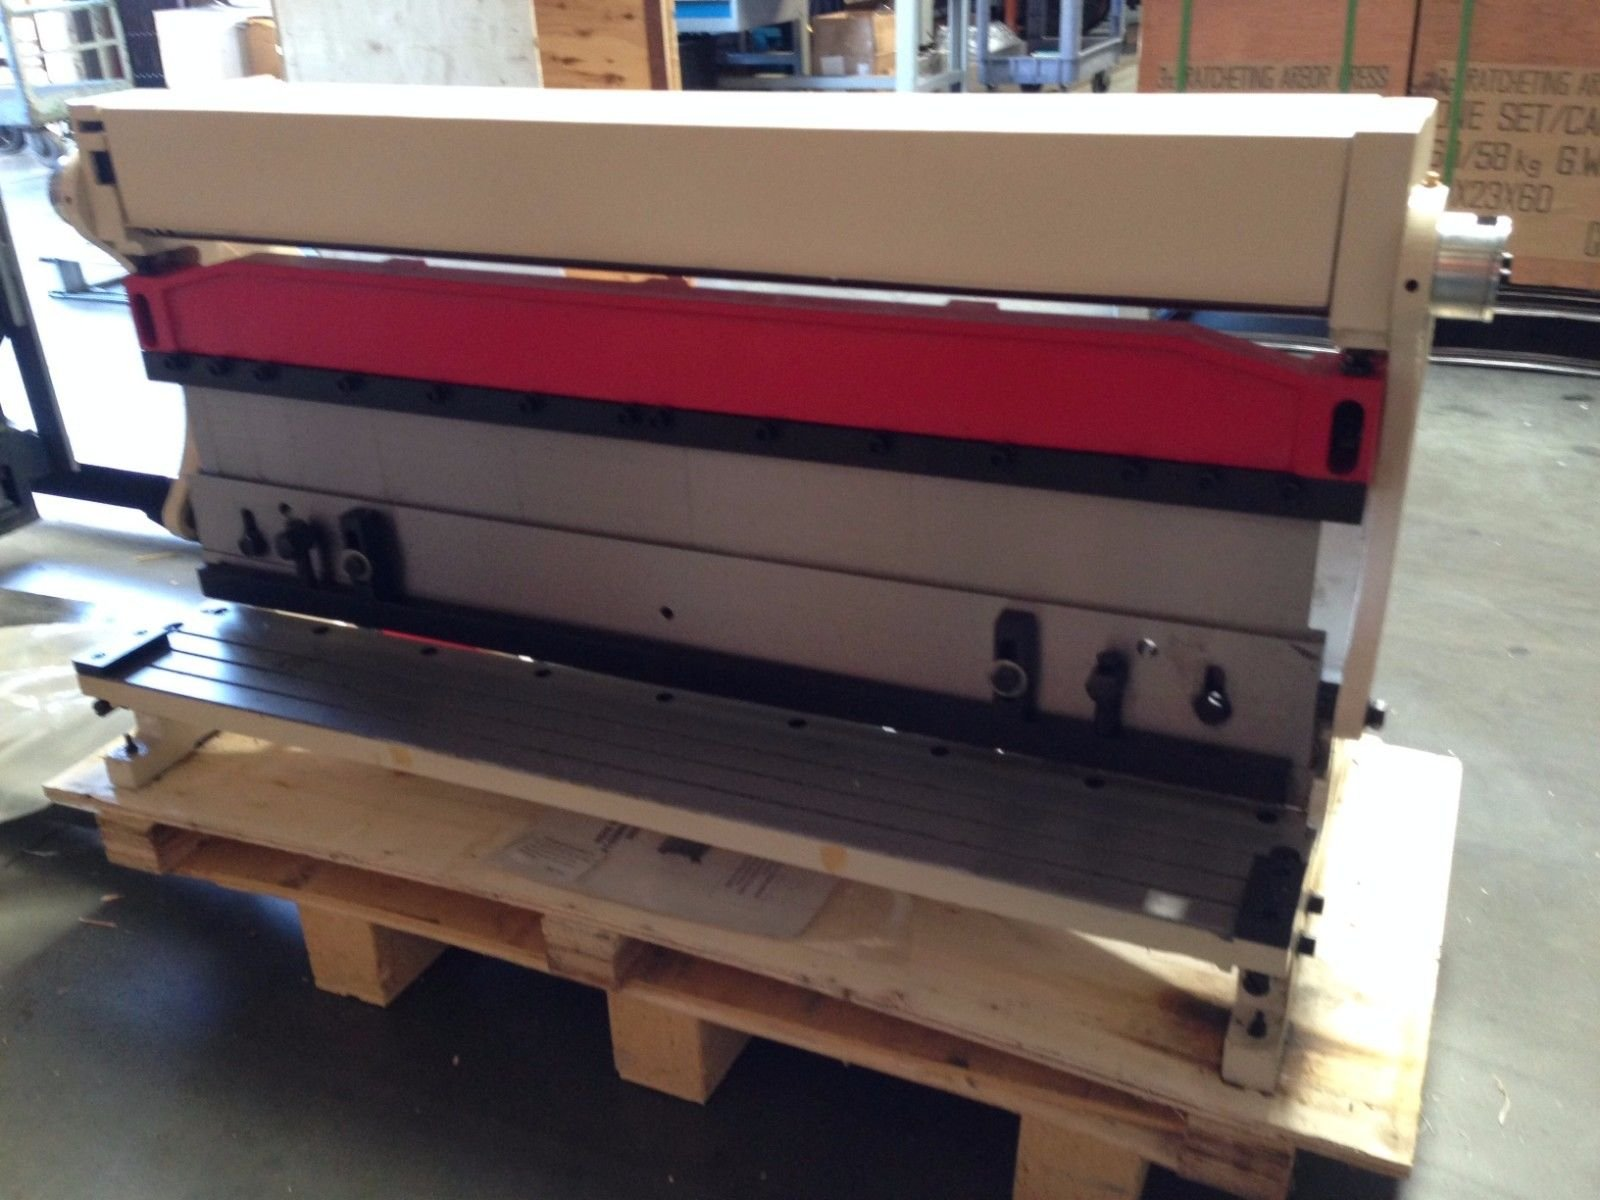 HHIP 8600-4028 Steel 3-in-1 Sheet Metal Machine, 22 Gauge, 40'' Size